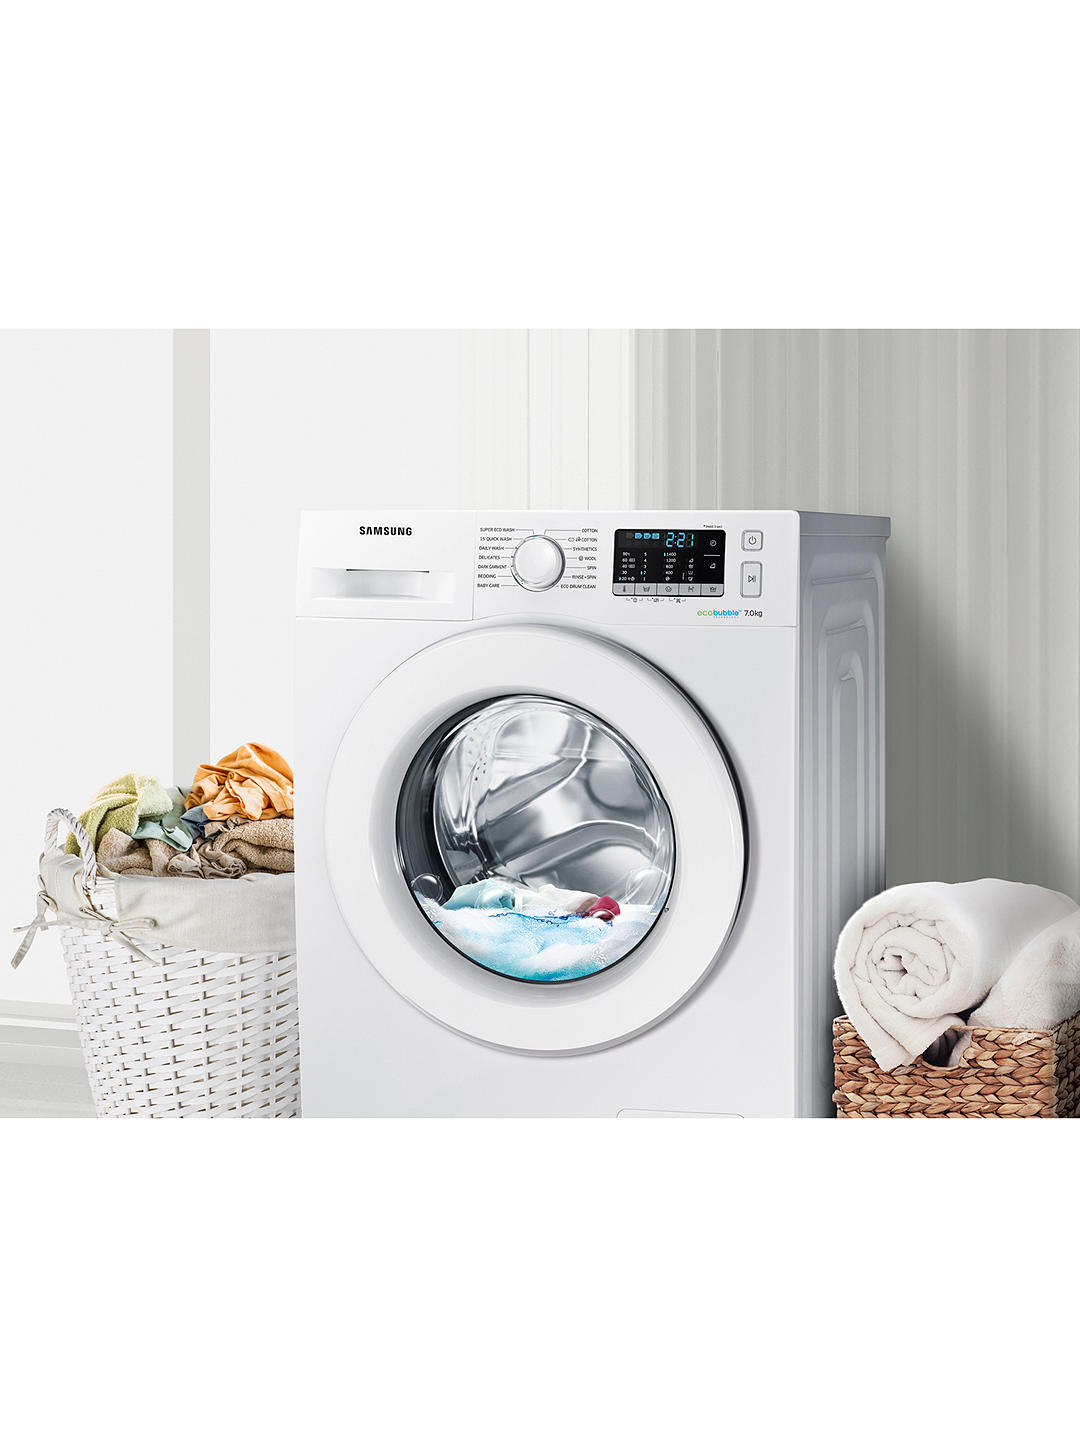 Buy Samsung WW70J5555MW/EU ecobubble™ Freestanding Washing Machine, 7kg Load, A+++ Energy Rating, 1400rpm Spin, White Online at johnlewis.com